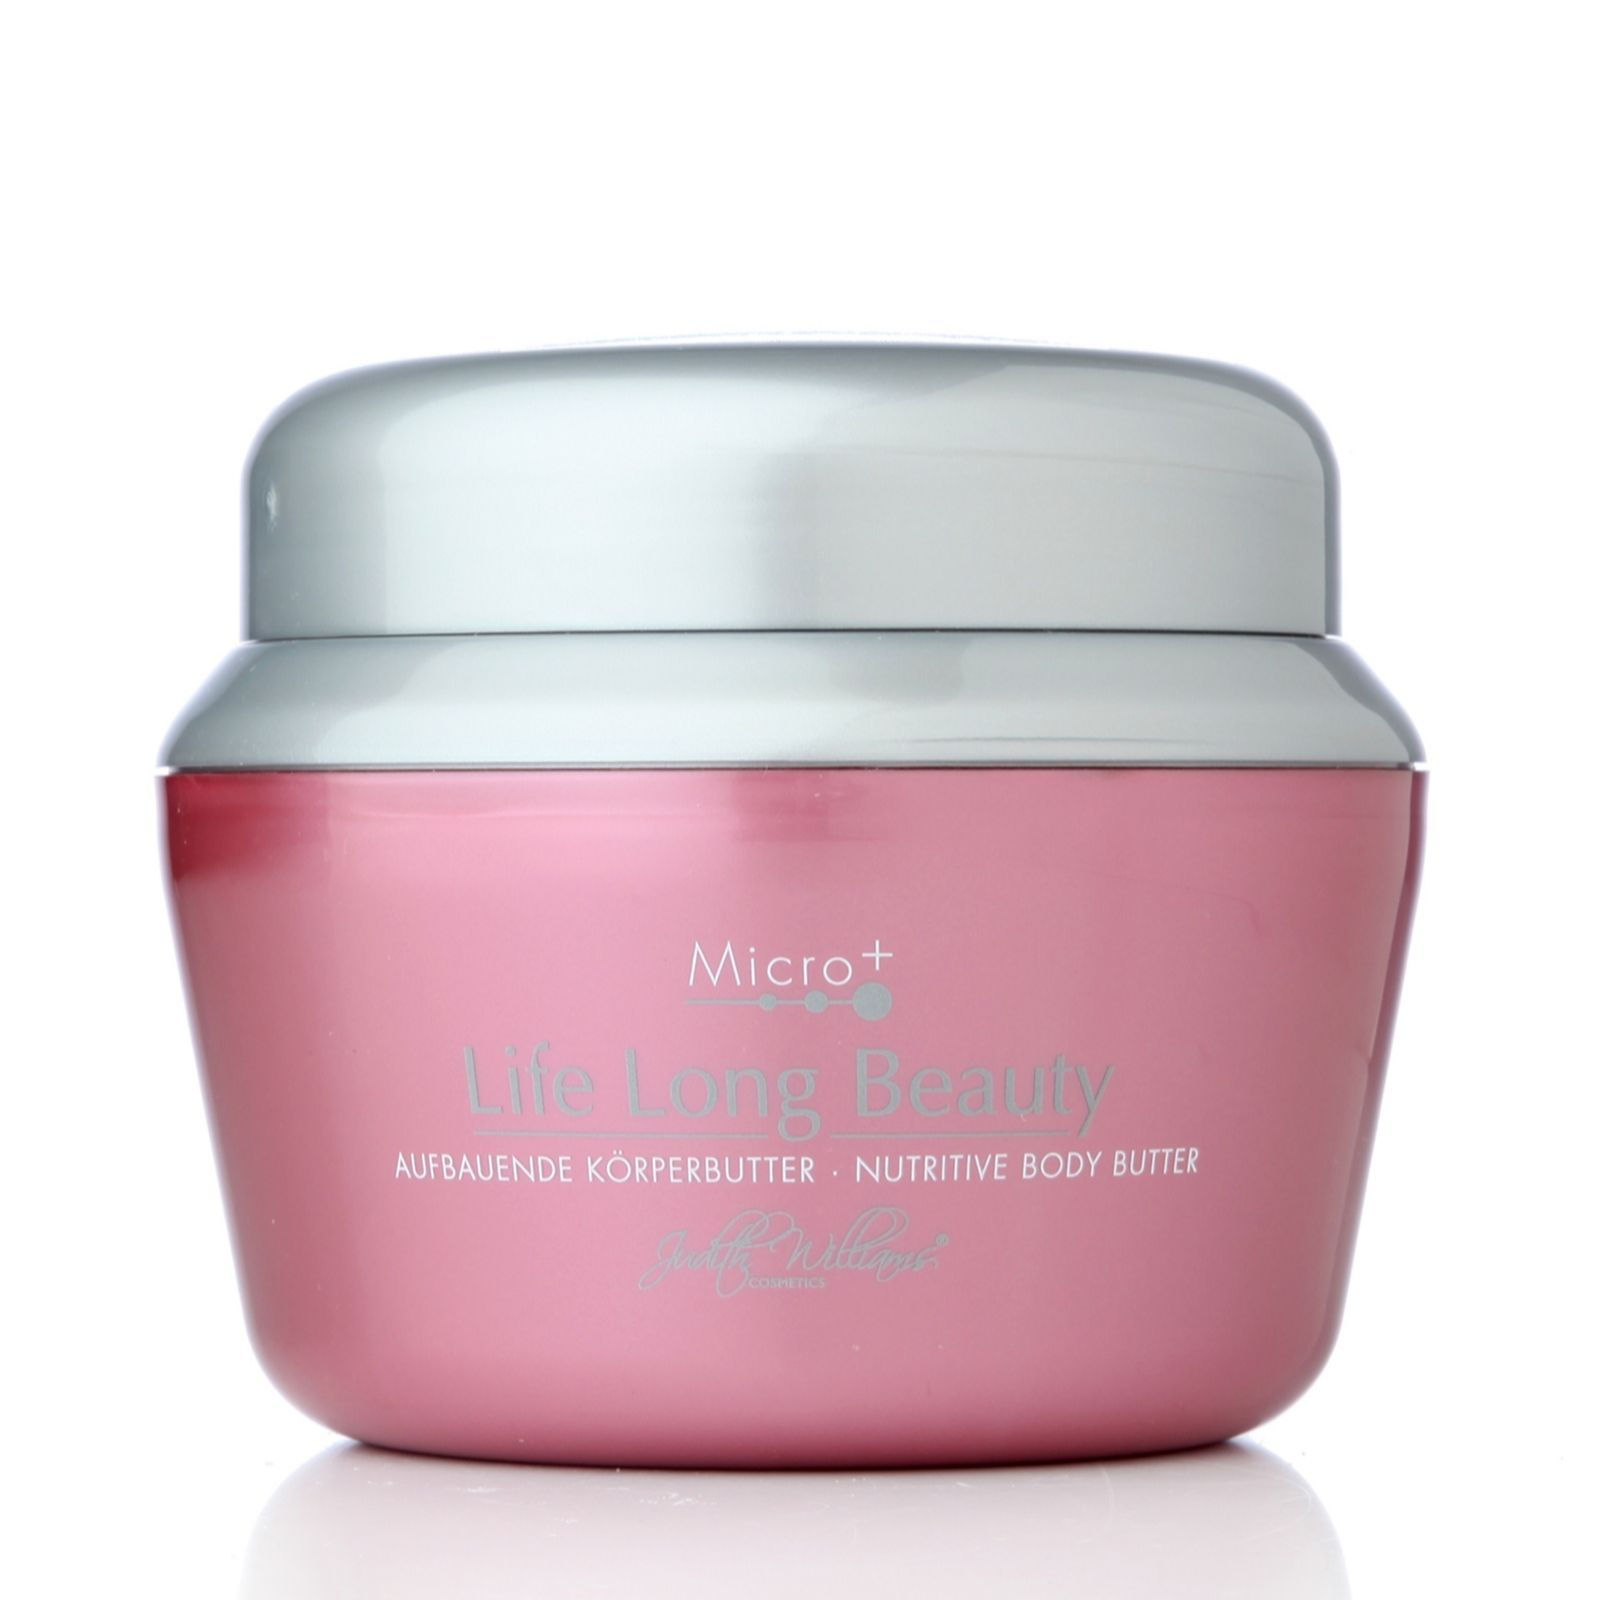 219188 Judith Williams Life Long Beauty Body Butter 400ml QVC Price:£25.50 + P&P: £3.95 Life Long Beauty Body Butter (400ml) from Judith Williams. Ideal for mature skin, it's enriched with shea butter and will help to leave your skin feeling silky smooth. Moisturise and rehydrate dry skin with this sumptuous body butter.